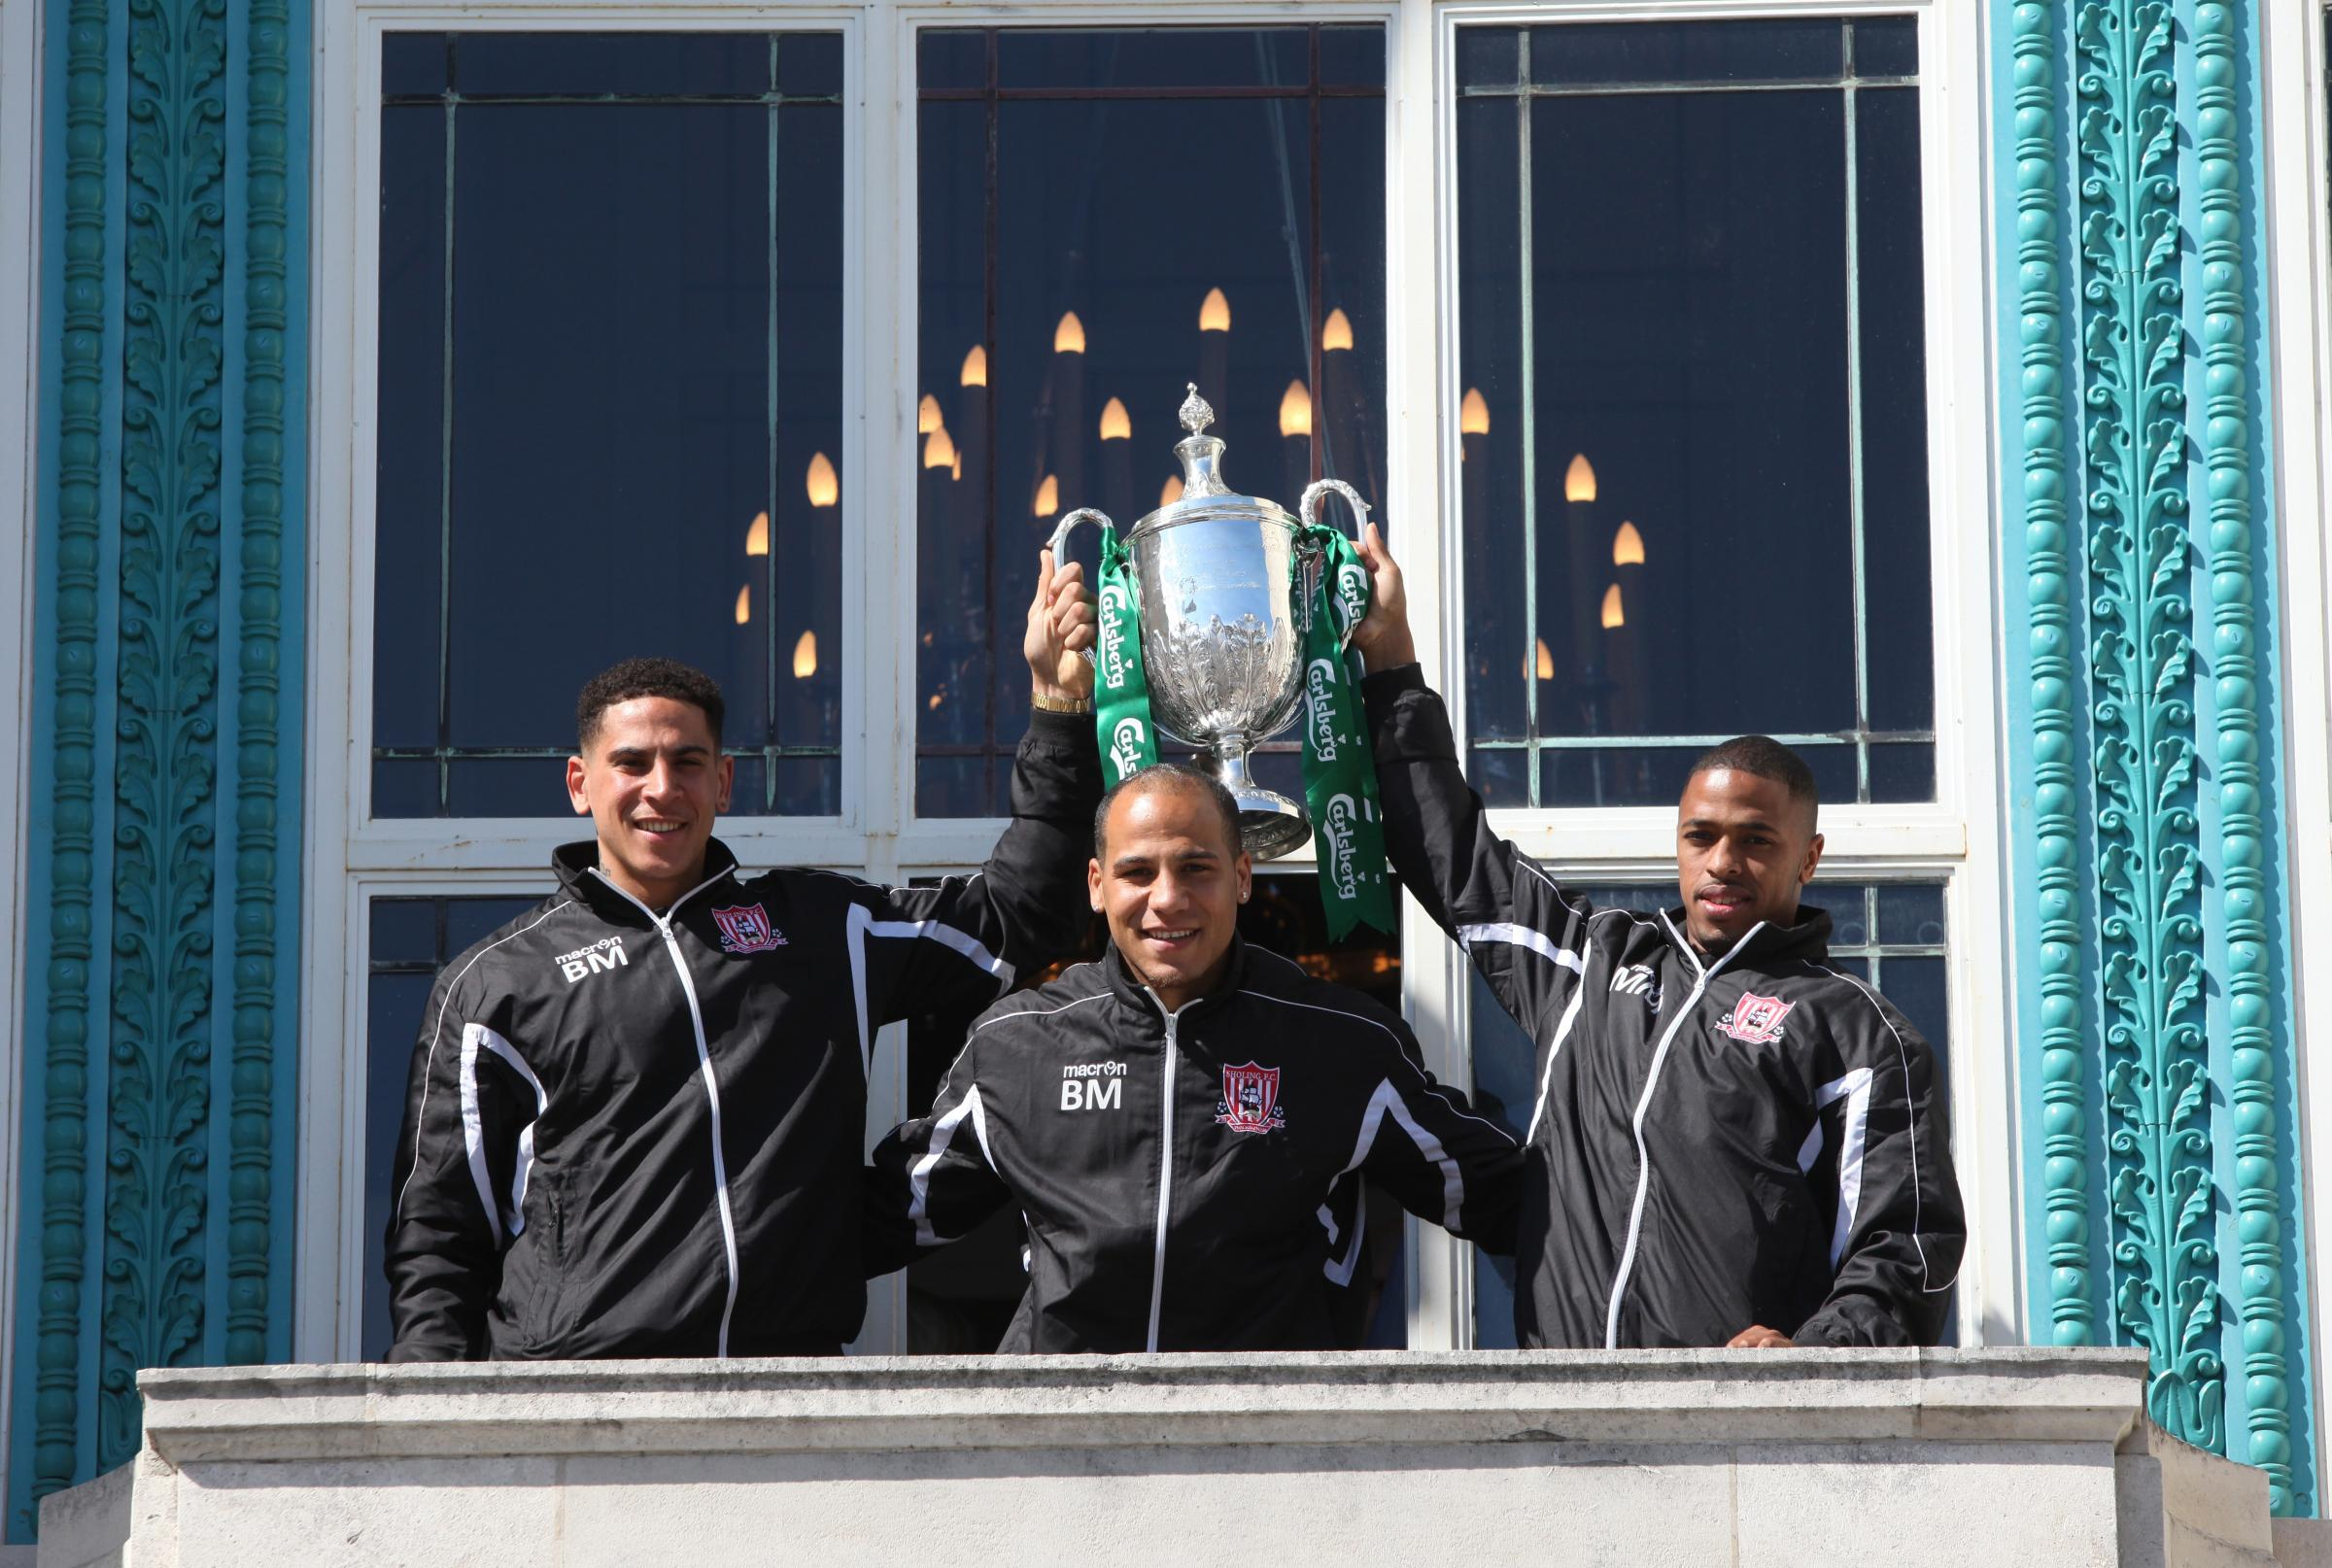 Sholing brought the FA Vase home to Hampshire in 2014